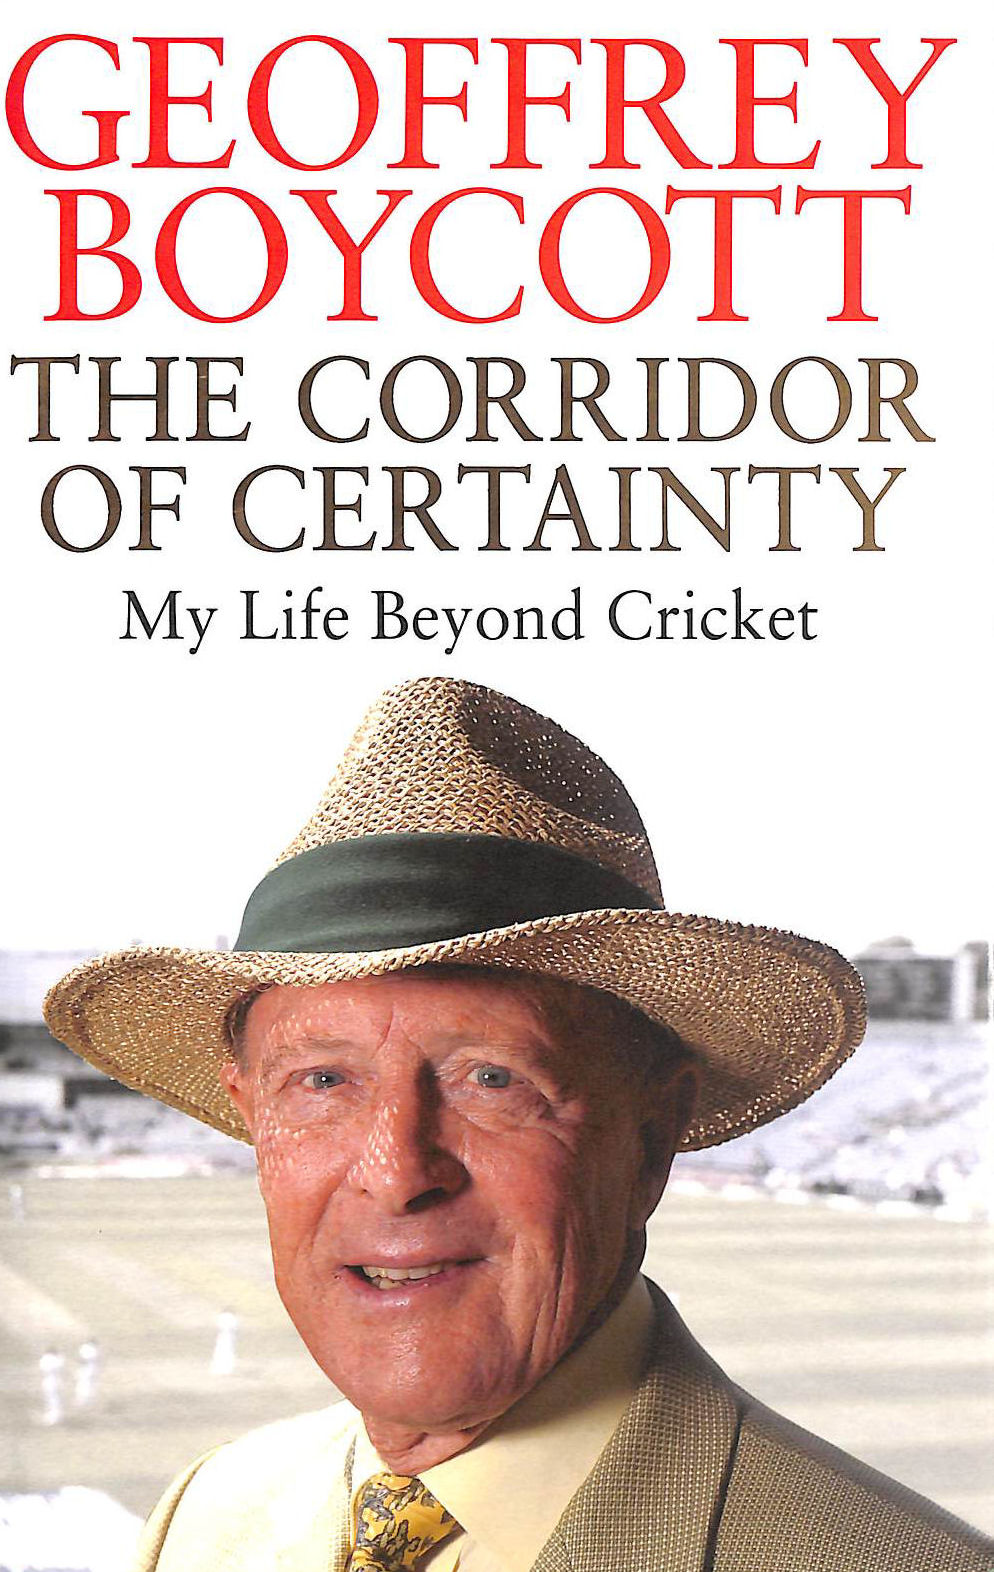 Image for The Corridor of Certainty: My Life Beyond Cricket